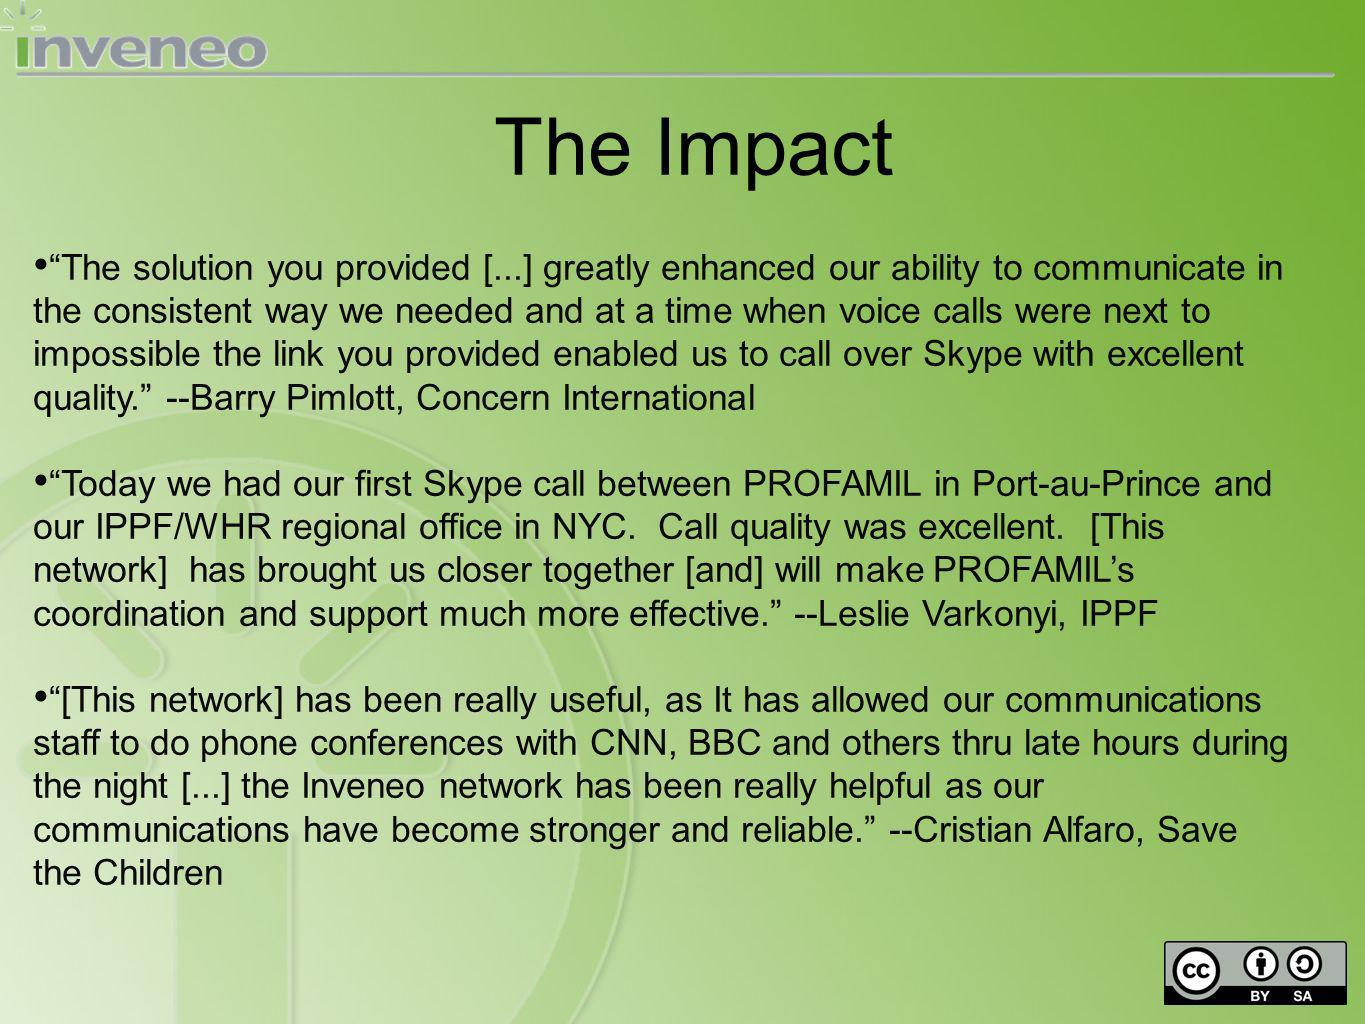 The solution you provided [...] greatly enhanced our ability to communicate in the consistent way we needed and at a time when voice calls were next to impossible the link you provided enabled us to call over Skype with excellent quality.